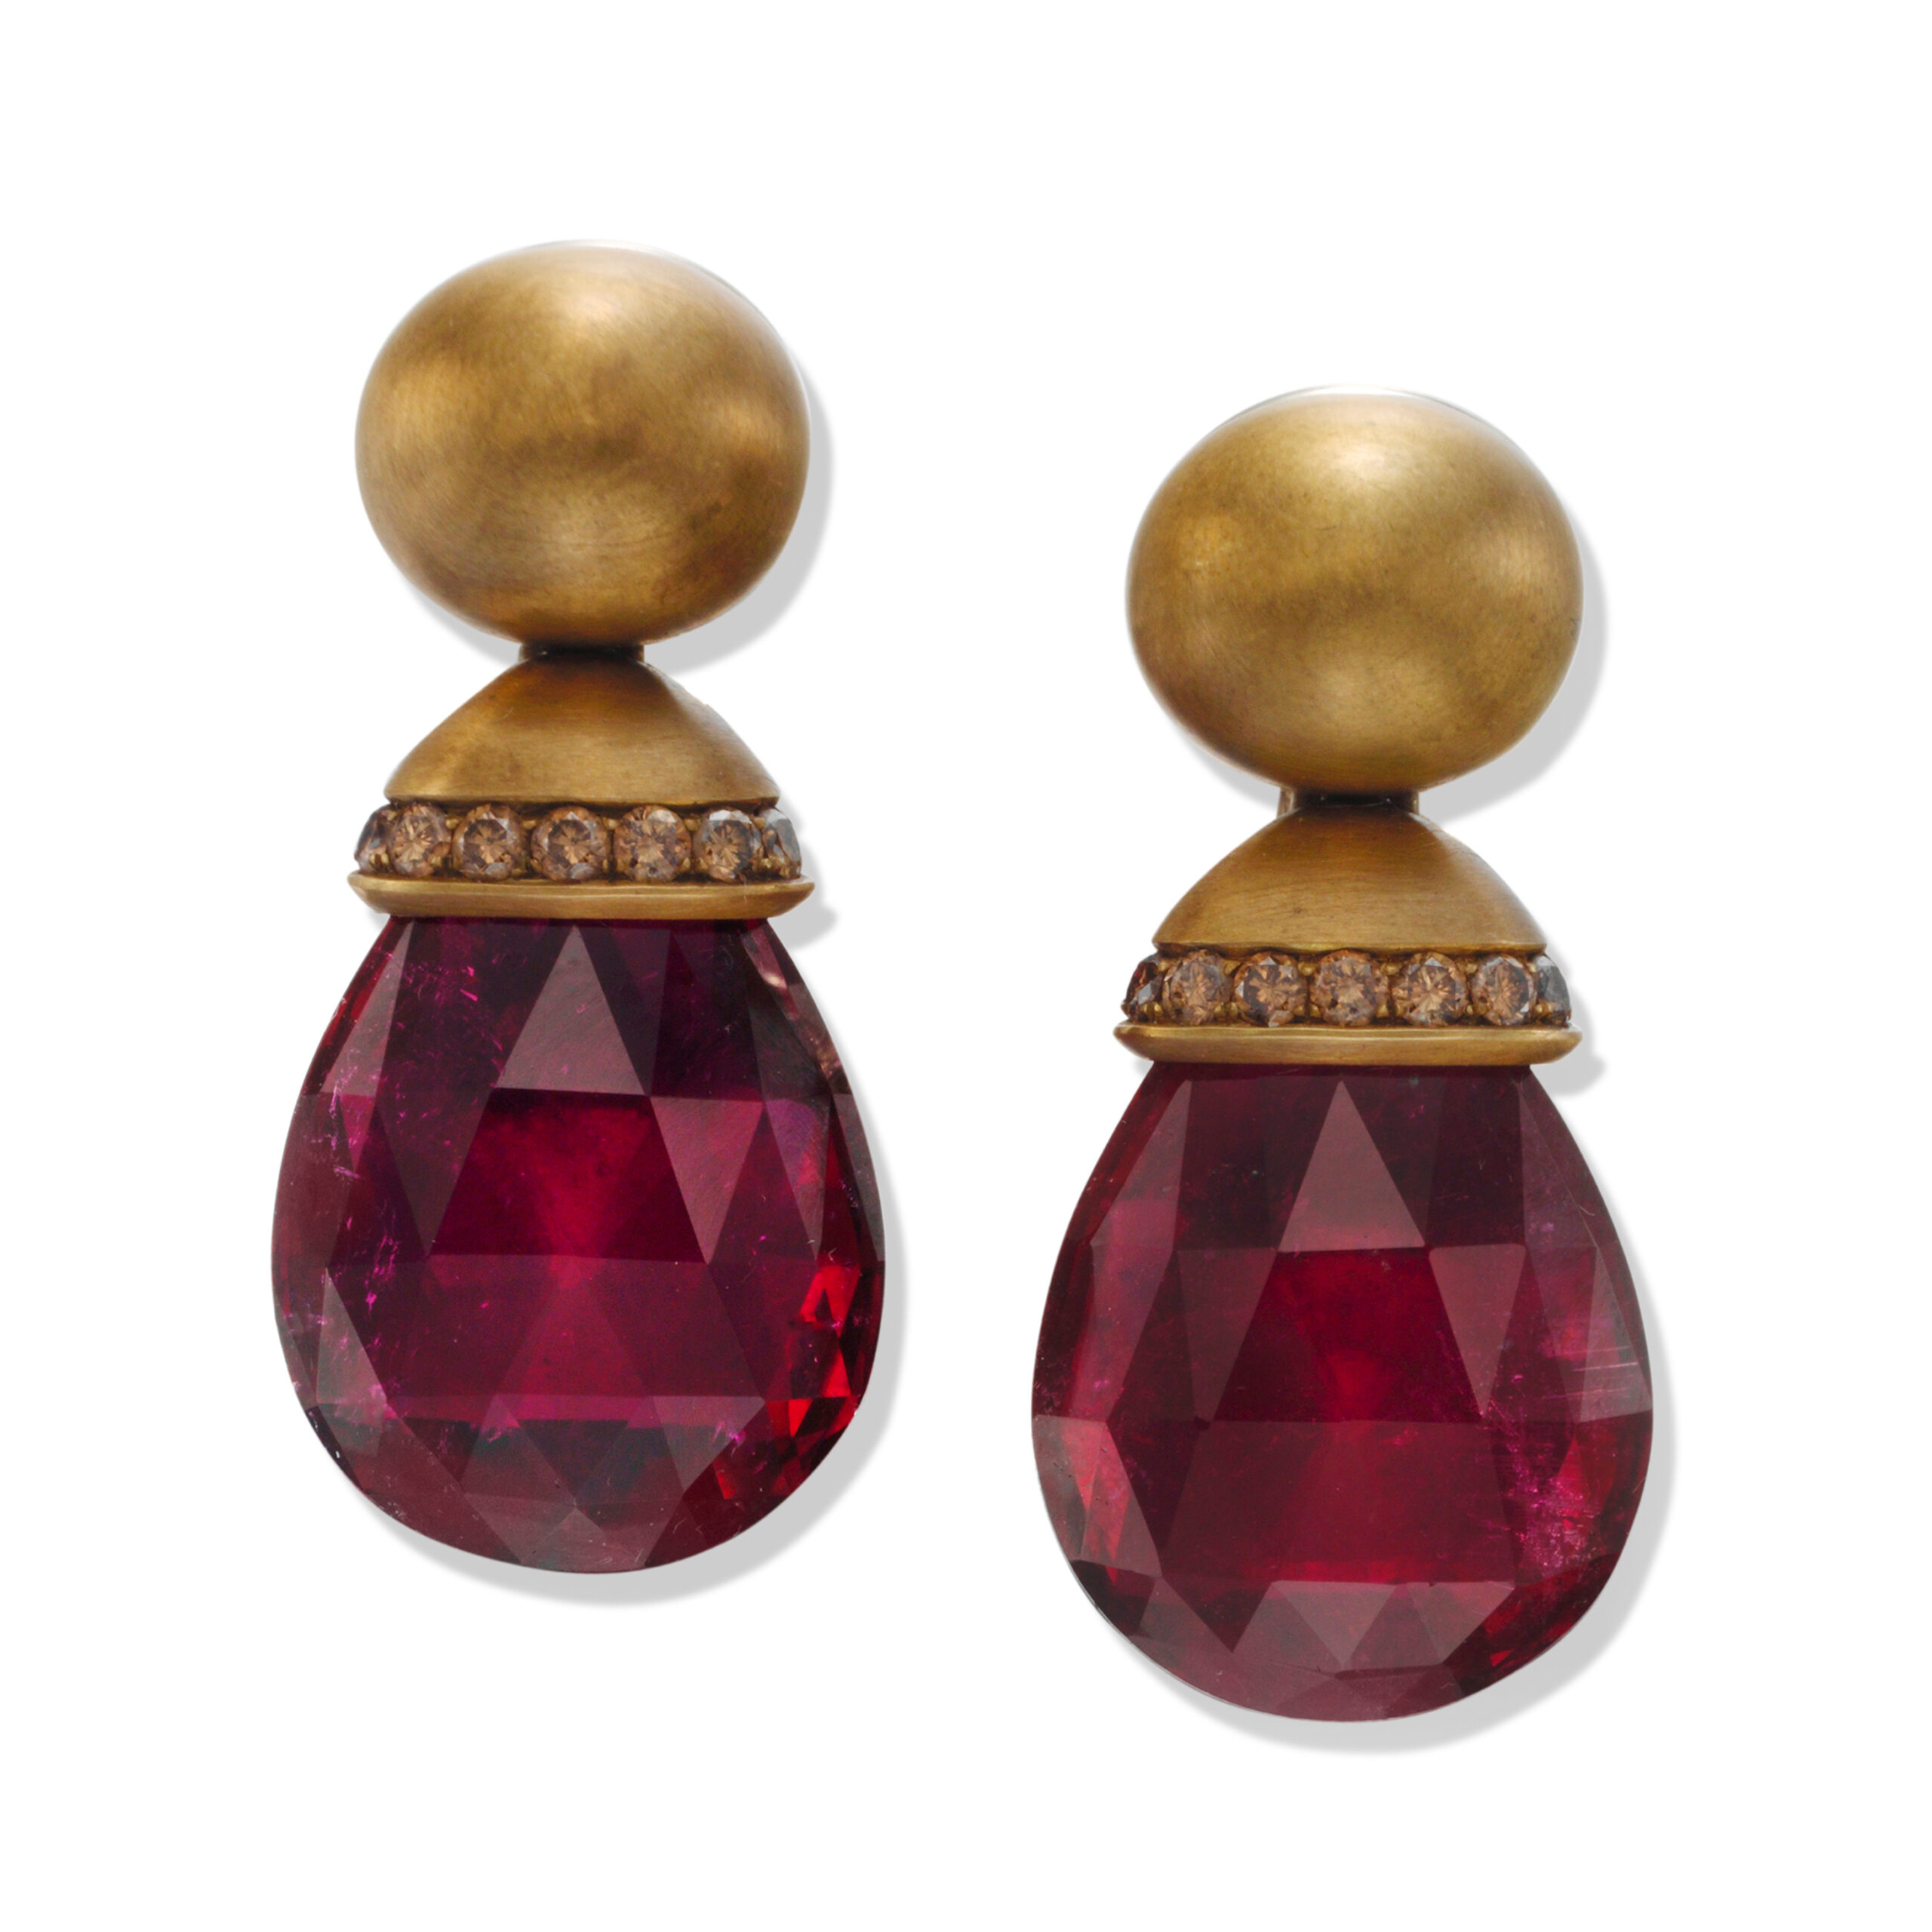 A Pair of Rubellite and Diamond Ear Pendants, by Hemmerle